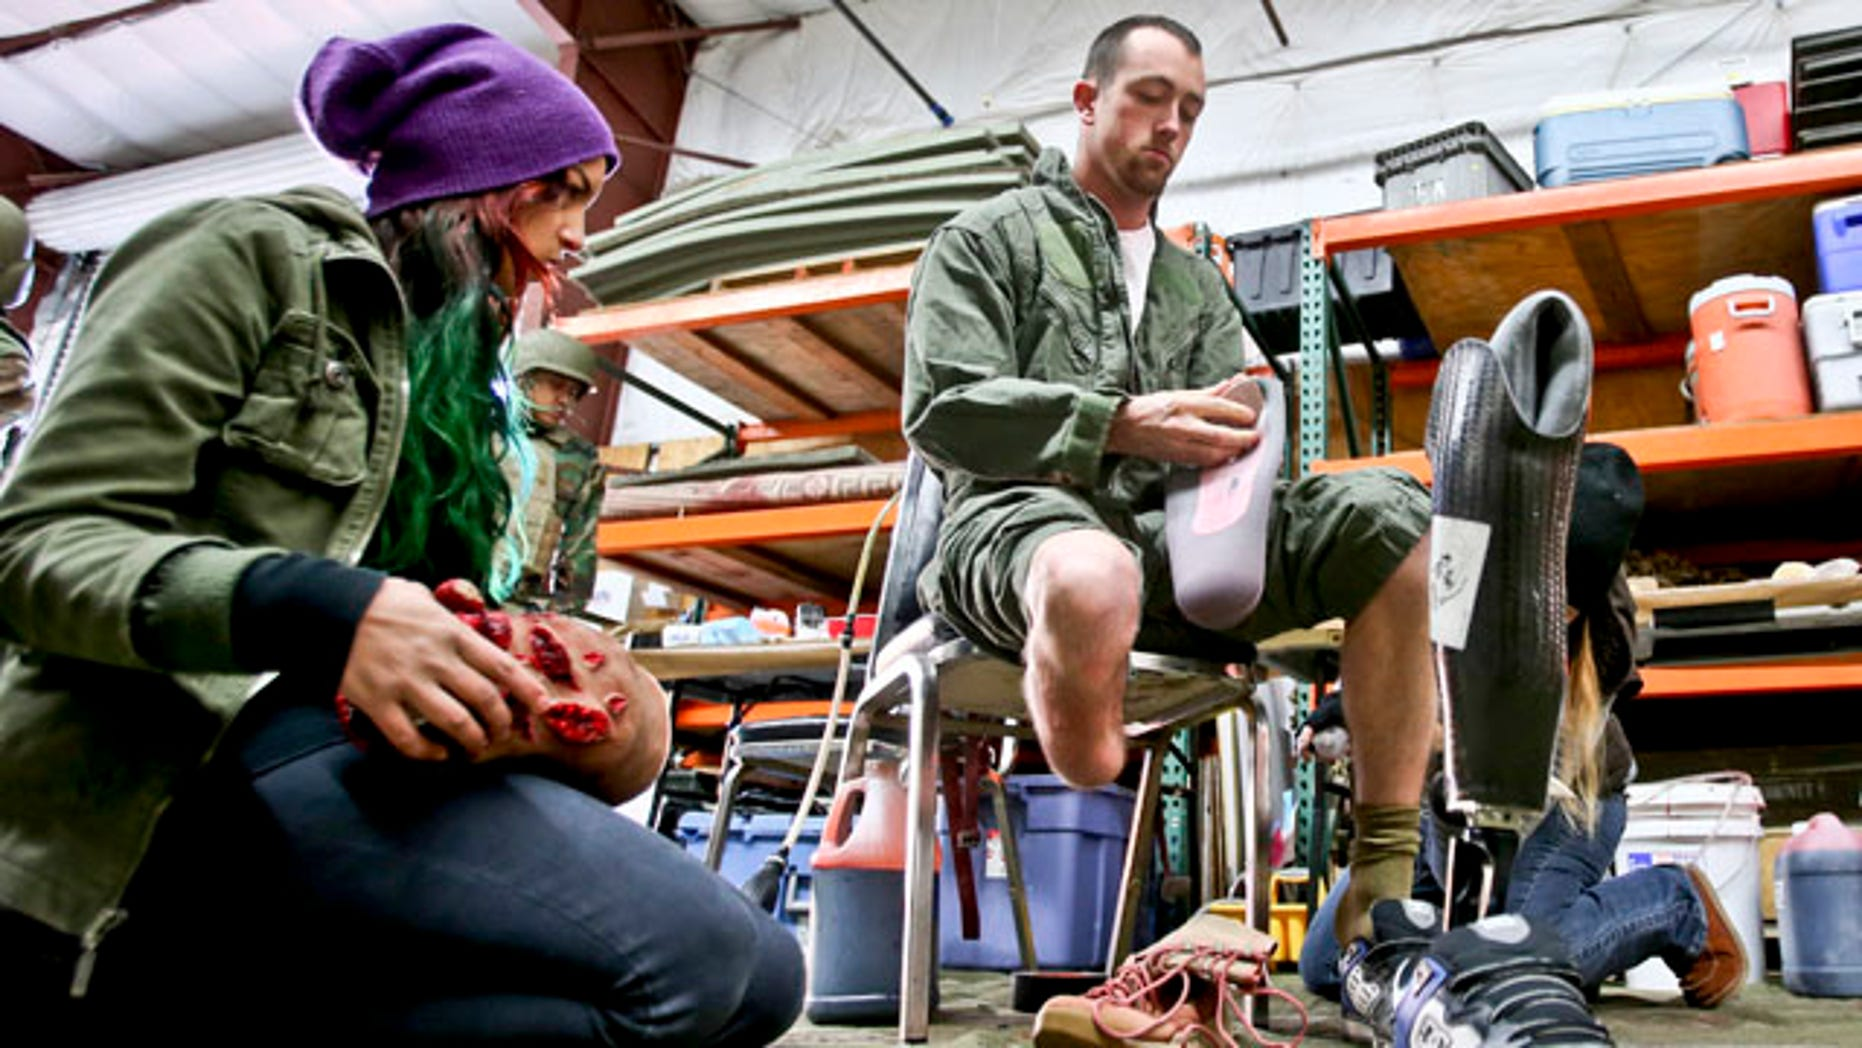 Feb. 12, 2013: Former Navy corpsman Joel Booth, who lost a leg in Afghanistan, prepares with the help of a makeup artist to play his role as a downed helicopter pilot in a military training exercise at San Diego-based Strategic Operation.